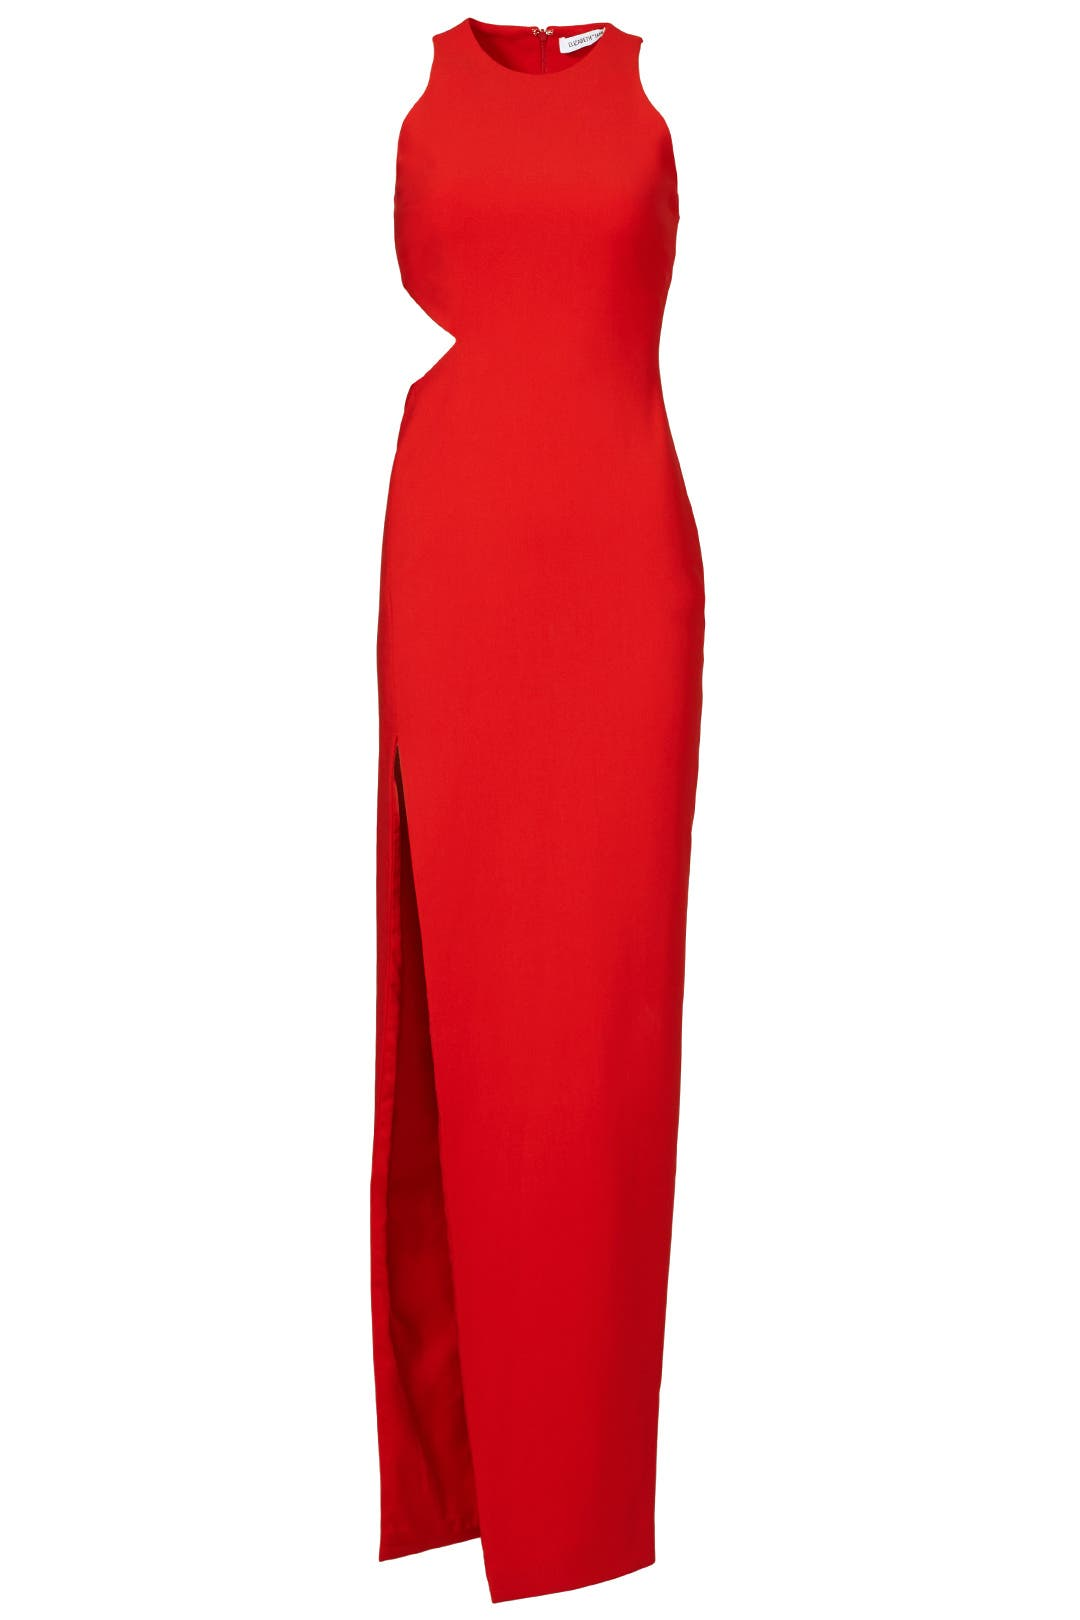 Giulia Gown by Elizabeth and James for $110 - $120 | Rent the Runway